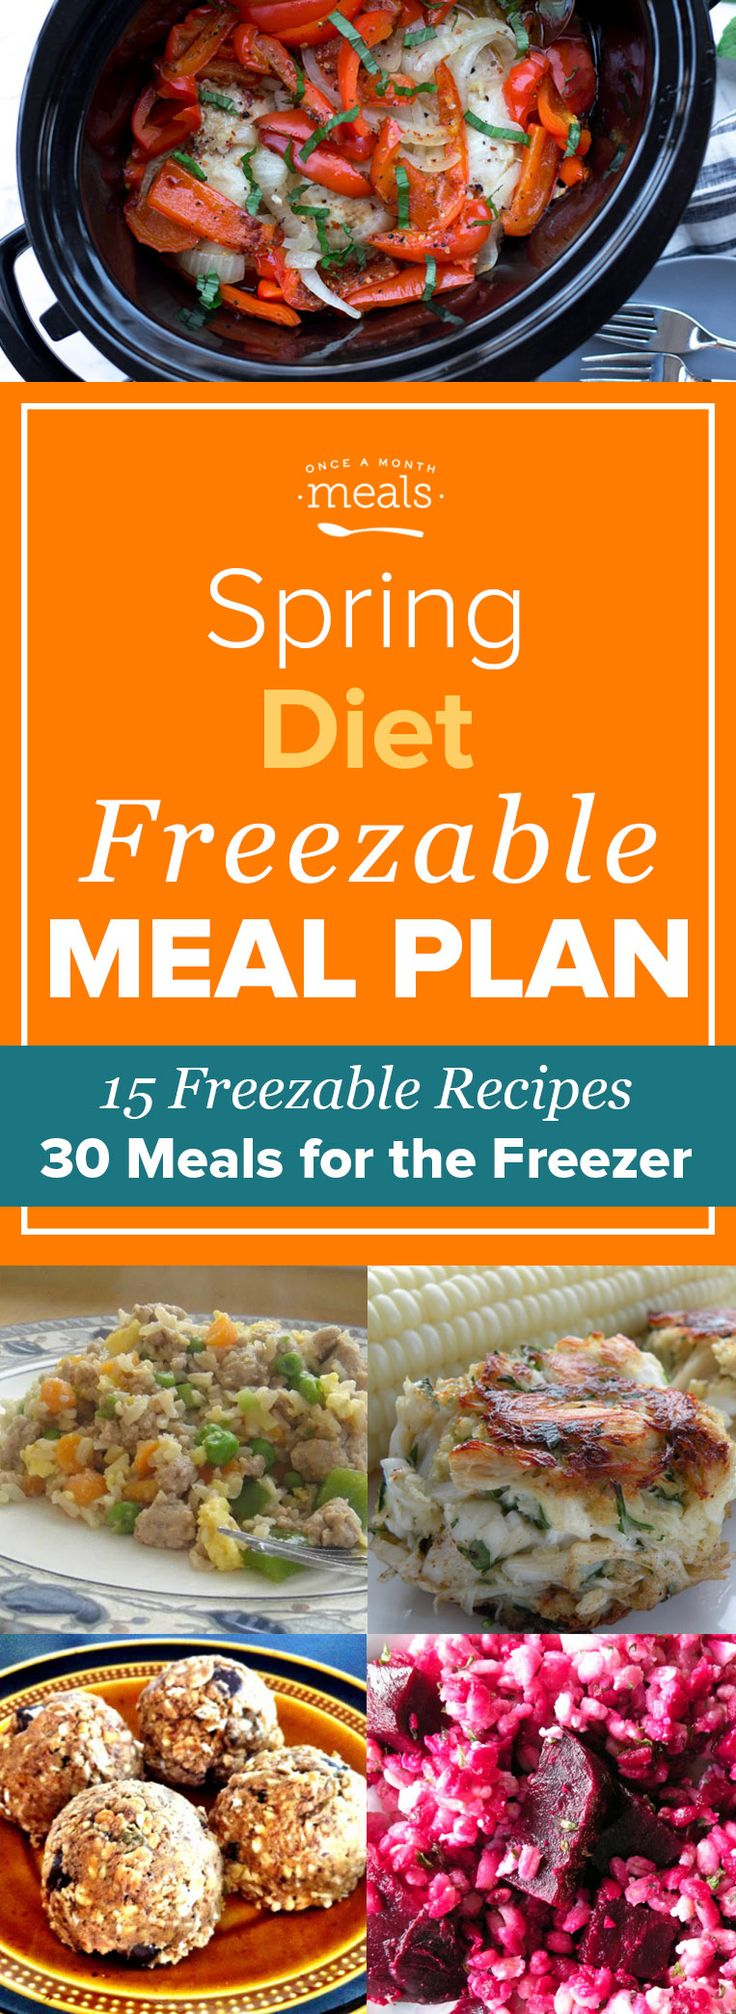 Take advantage of seasonal produce like beets, strawberries, and cherries as you meal plan with this Spring Diet Freezer Menu of freezable recipes! via @onceamonthmeals